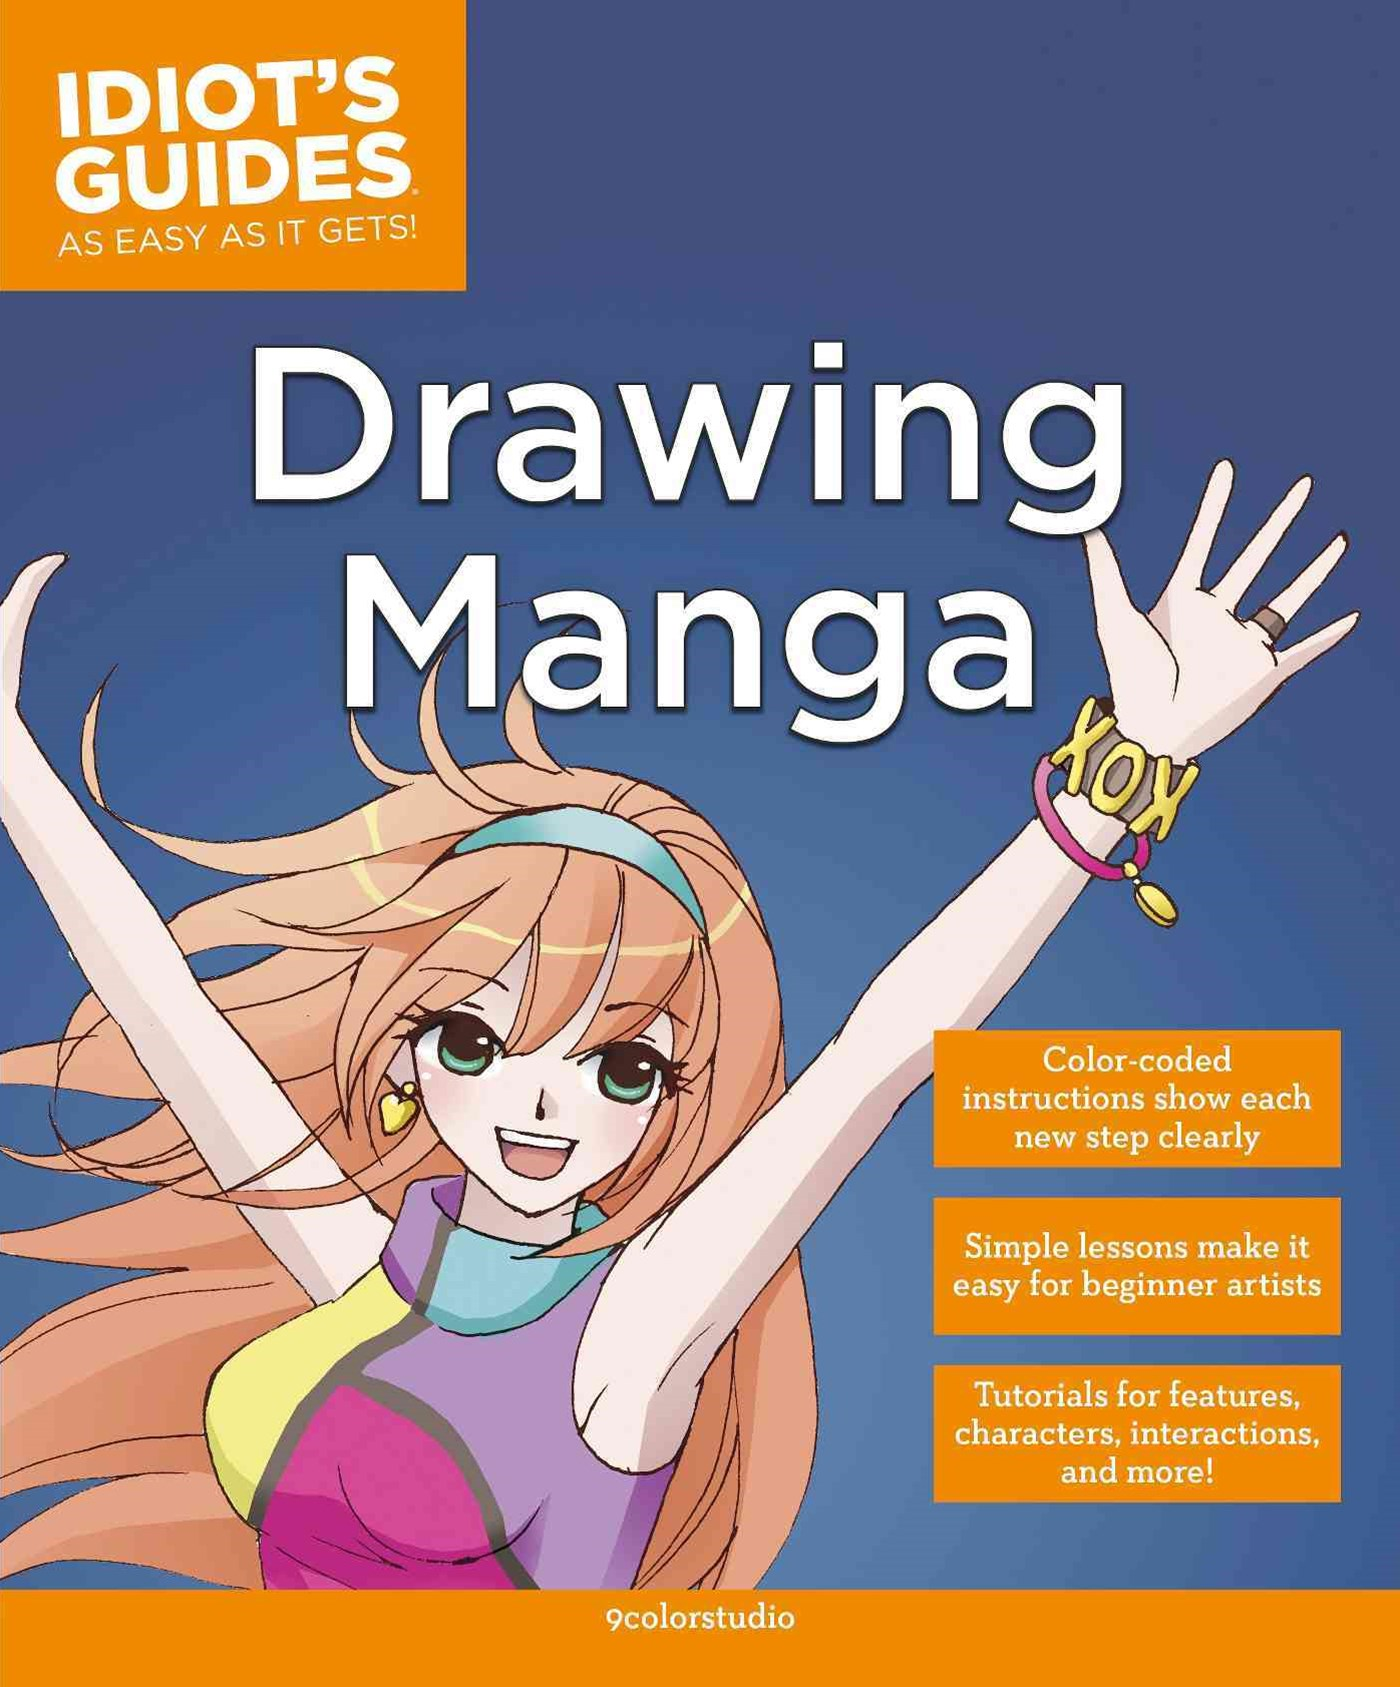 Idiot's Guides: Drawing Manga